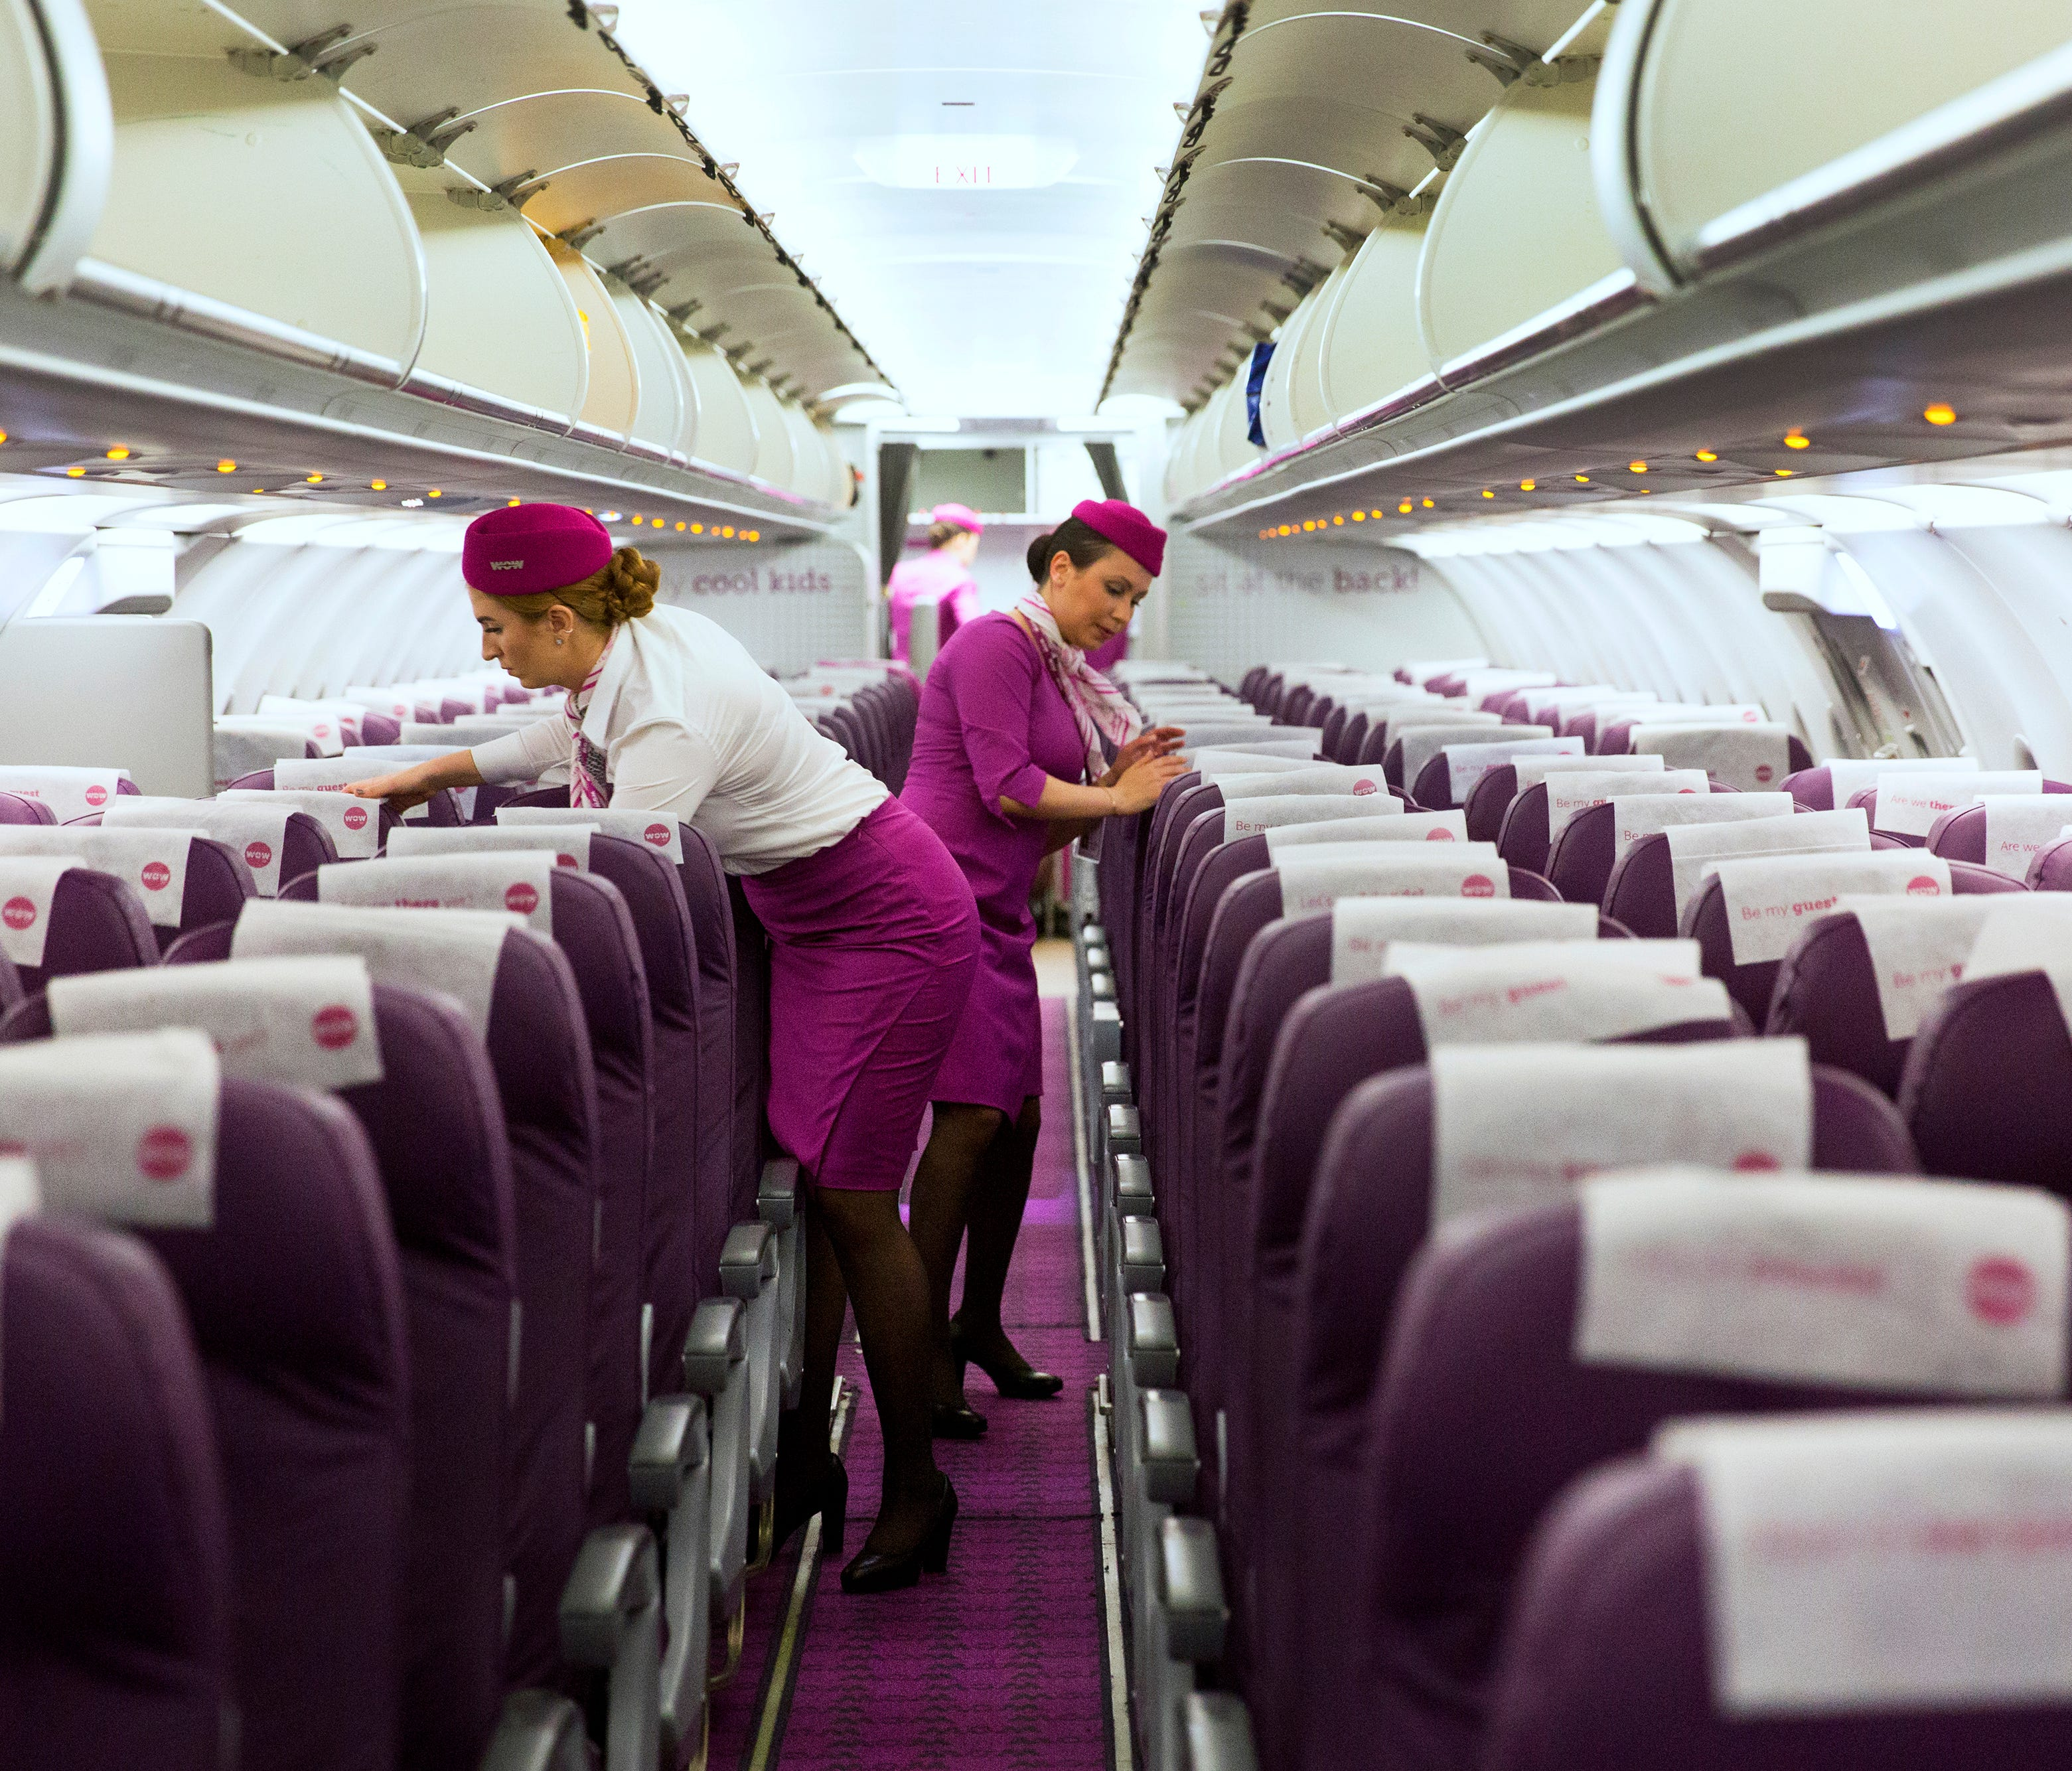 WOW Airlines celebrated their first flight from CVG on May 9. The plane took off for the five-and-a-half hour flight to Iceland at 12:50 am on May 10. So much purple! Flight attendants' uniforms are designed to be noticed. They embrace a vintage look